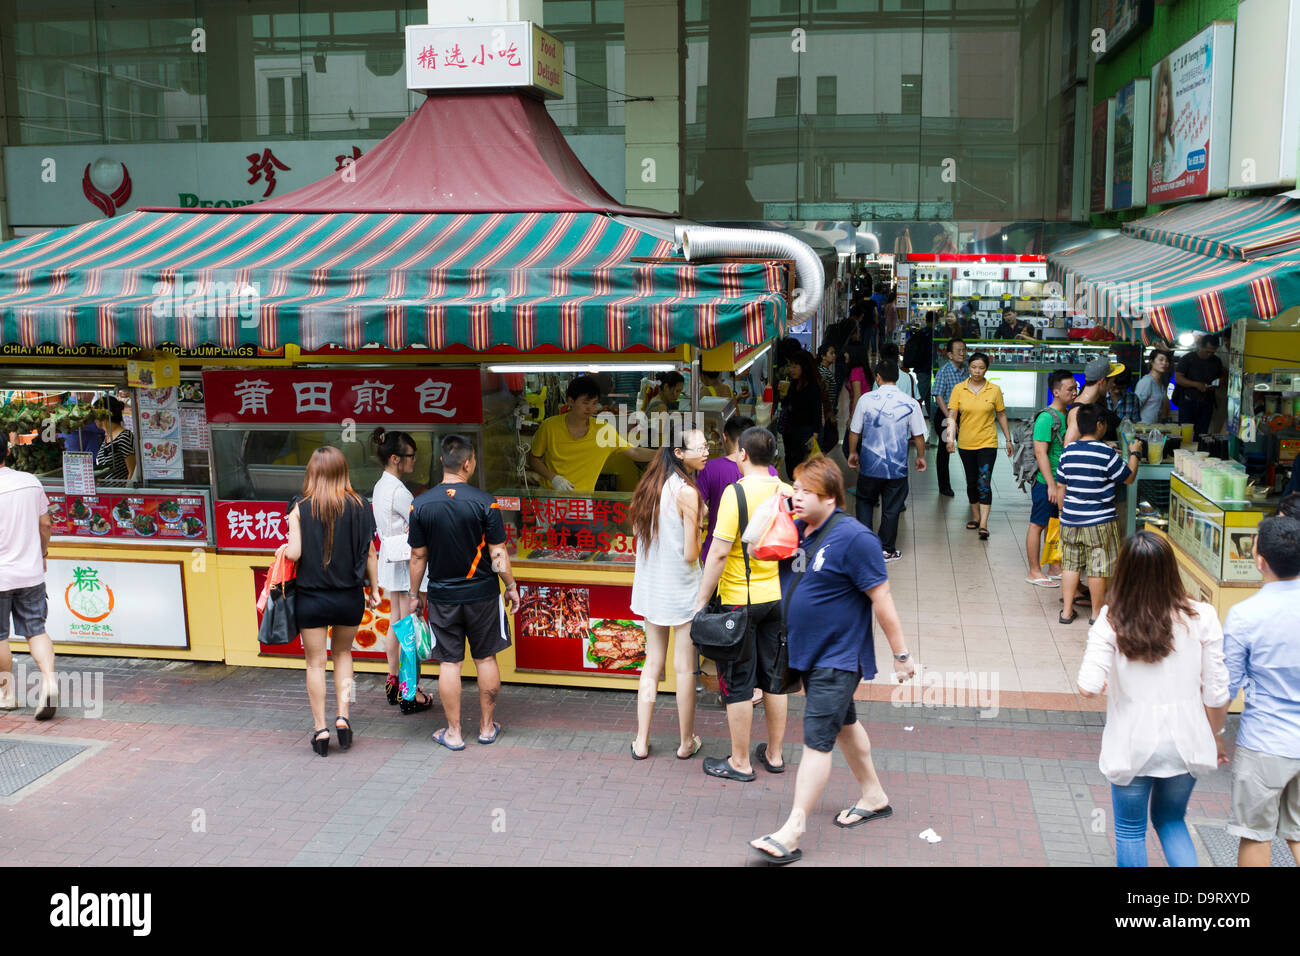 People buying food at stalls in Chinatown, Singapore - Stock Image